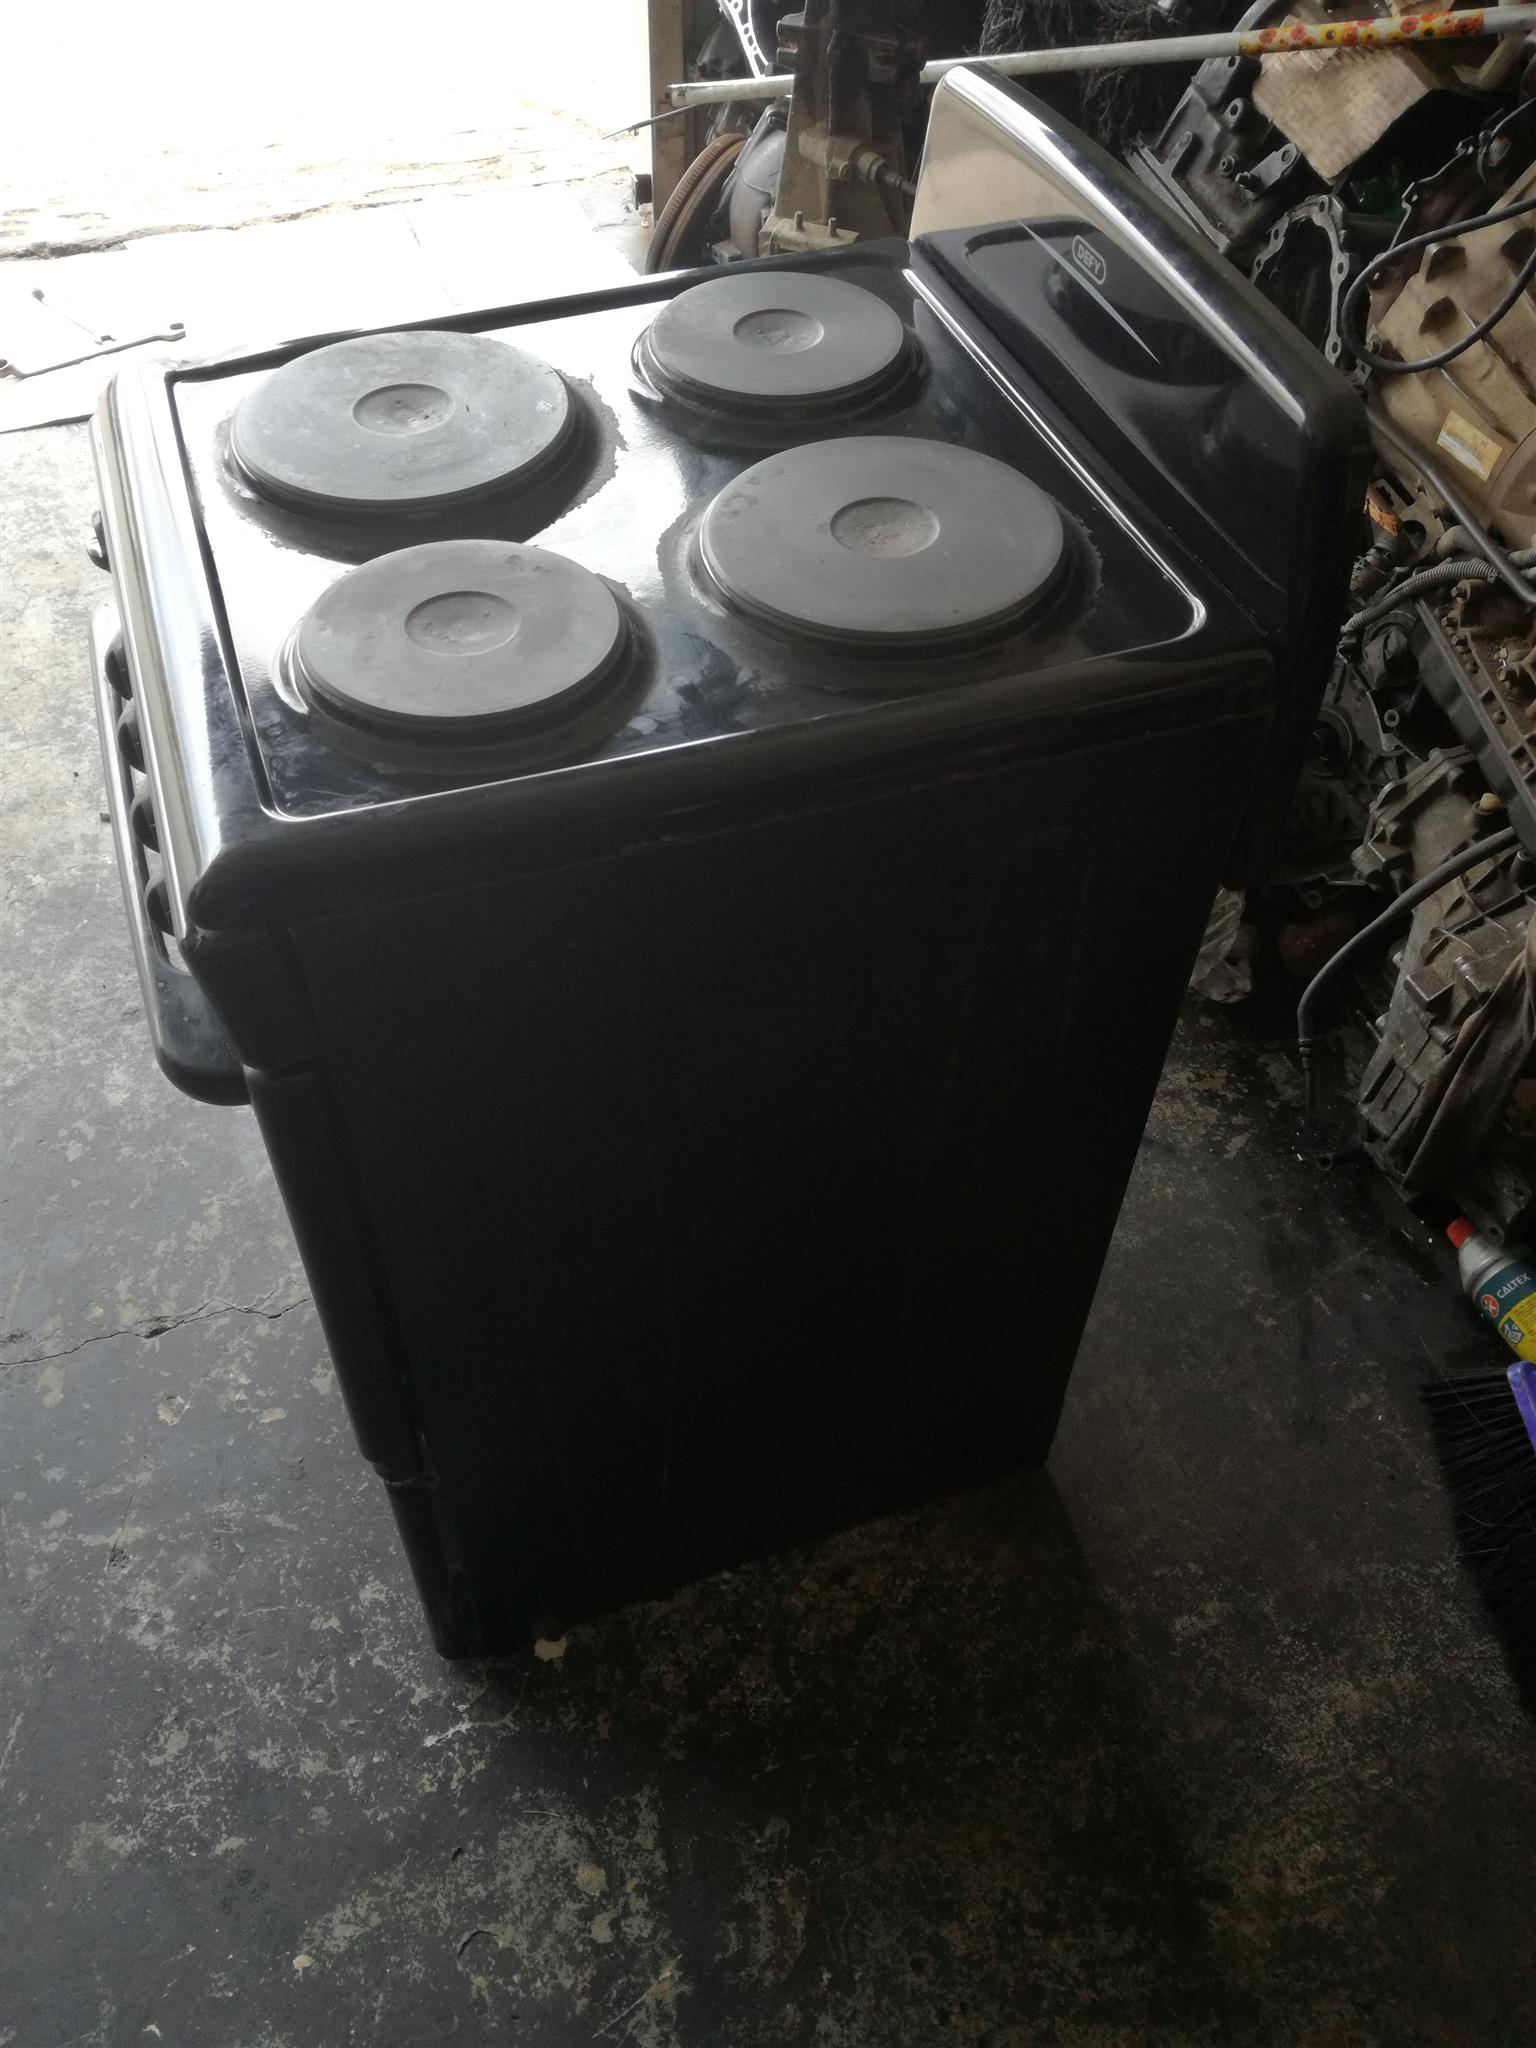 Defy 4 plate stove for sale. R700.